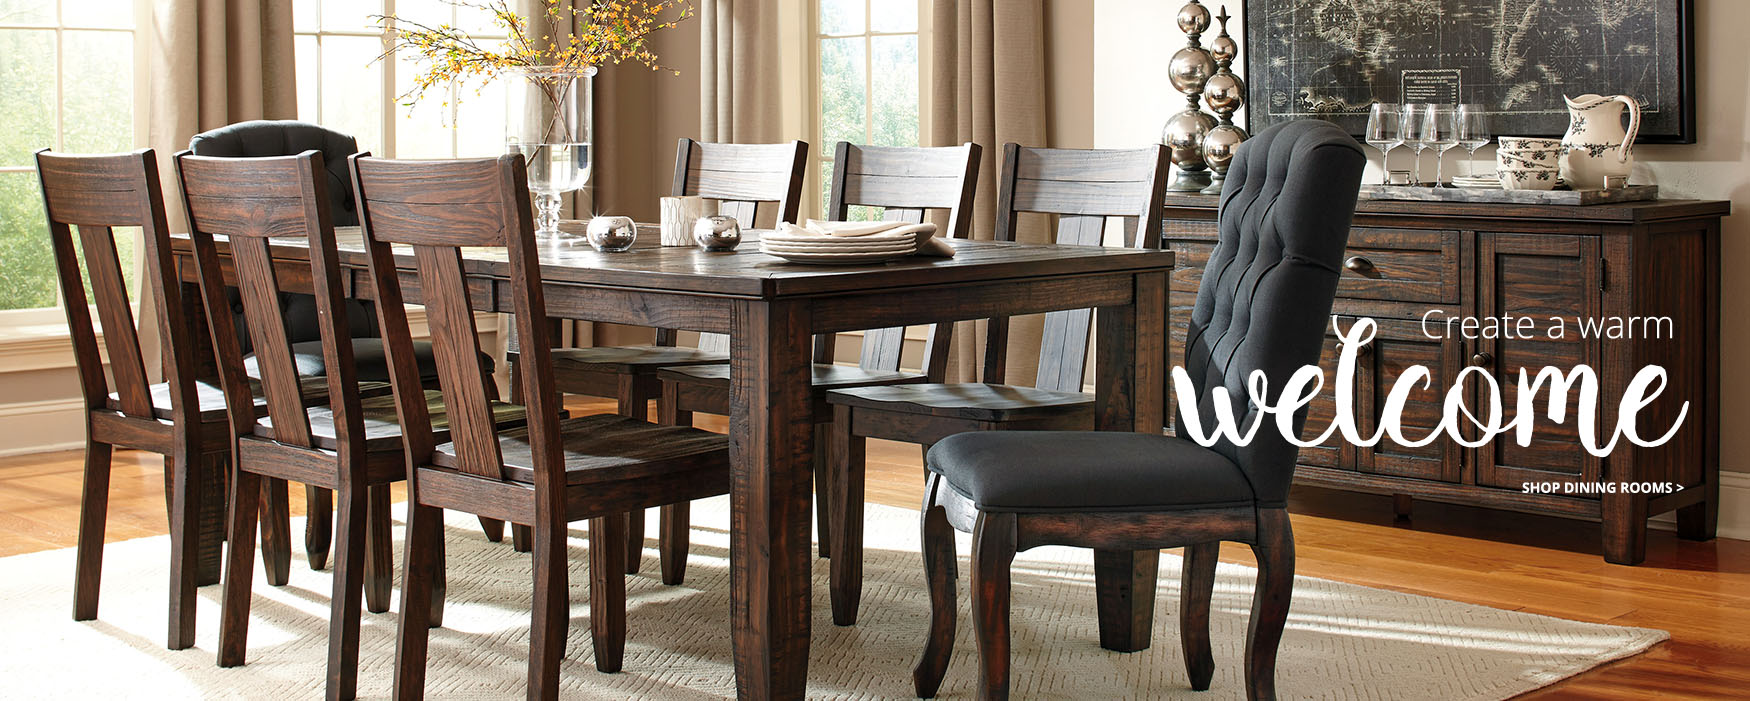 help me decorate my living room online converting bedroom to bat open living room best site The Best Furniture and Mattress Store in Tri-County, West Chester and  Winton Woods in Cincinnati, OH │ Bargains and Buyouts